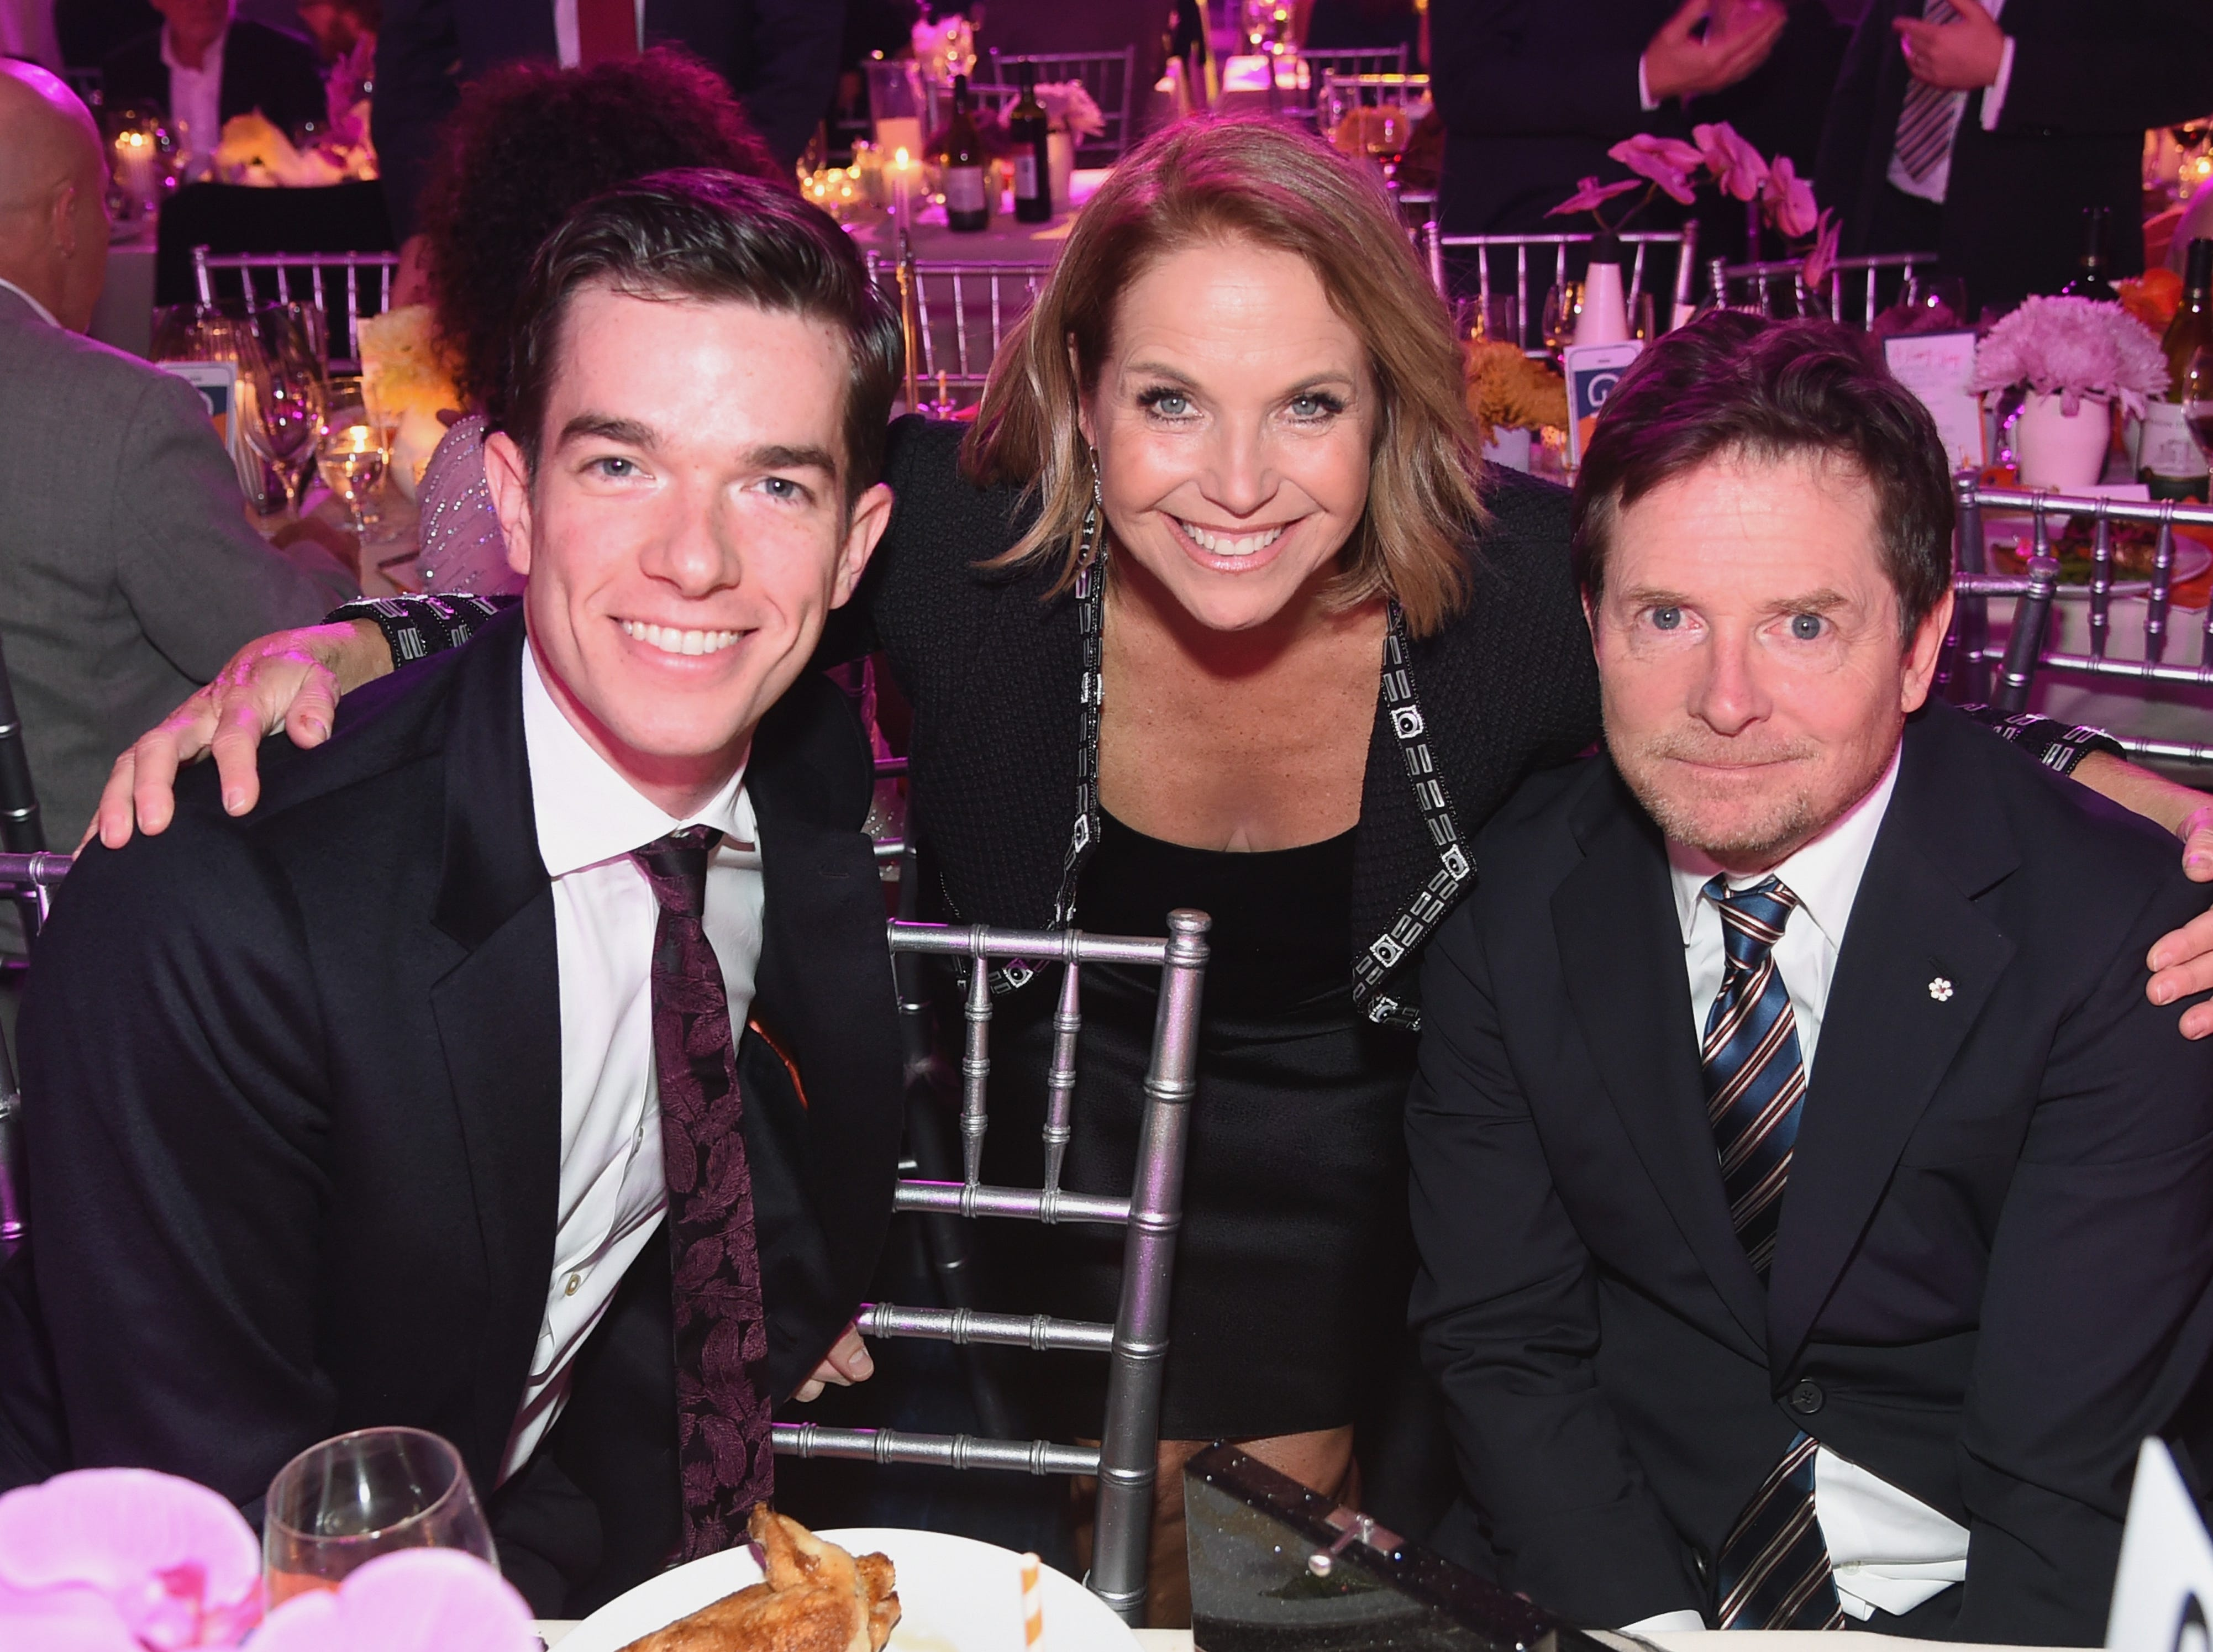 November 10: John Mulaney, Katie Couric, and Michael J. Fox pose together at a benefit for The Michael J. Fox Foundation in New York.